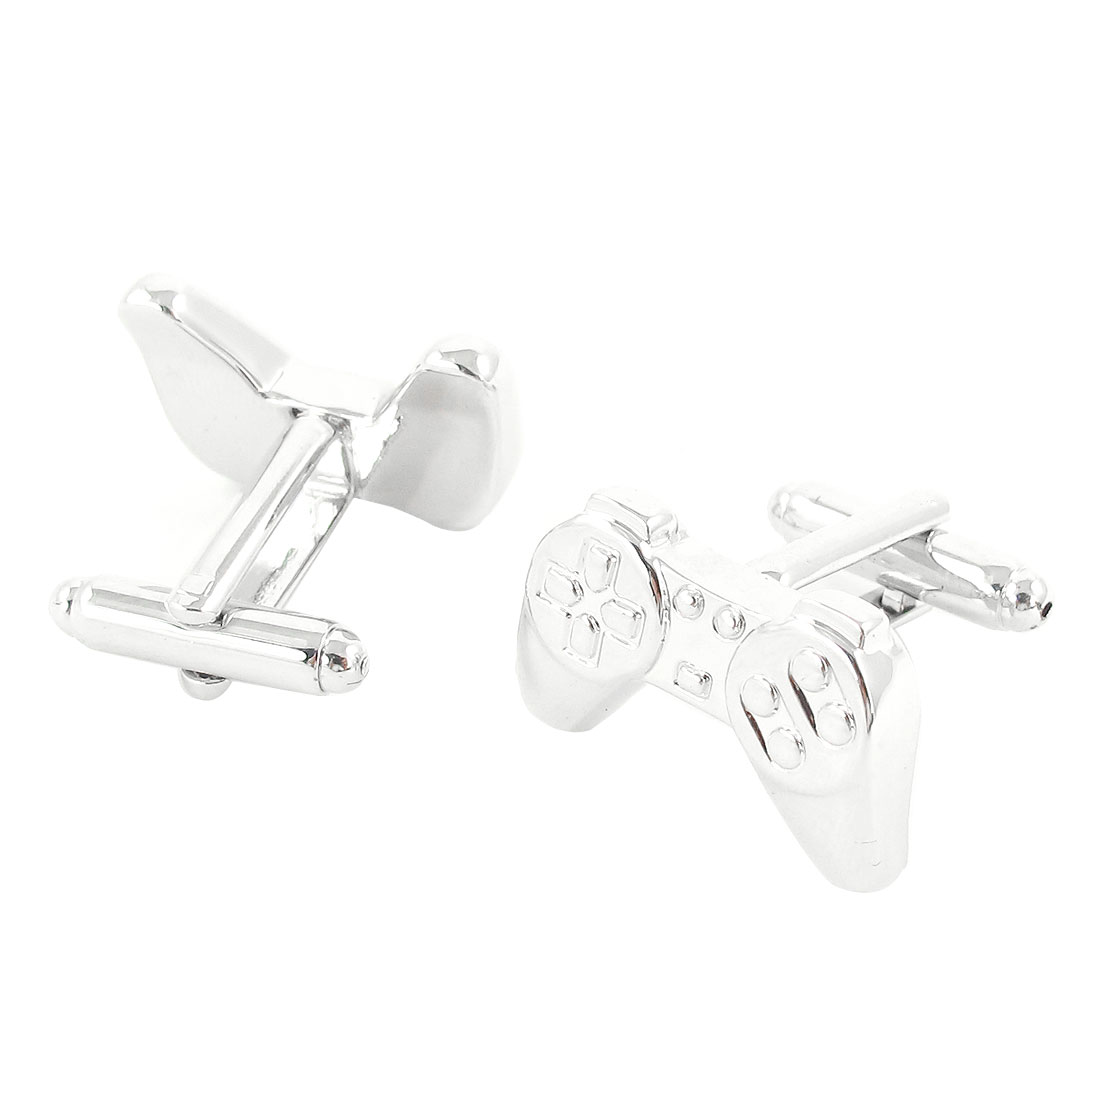 Silver Tone Metal Playstation Design Cufflinks Cuff Links Pair